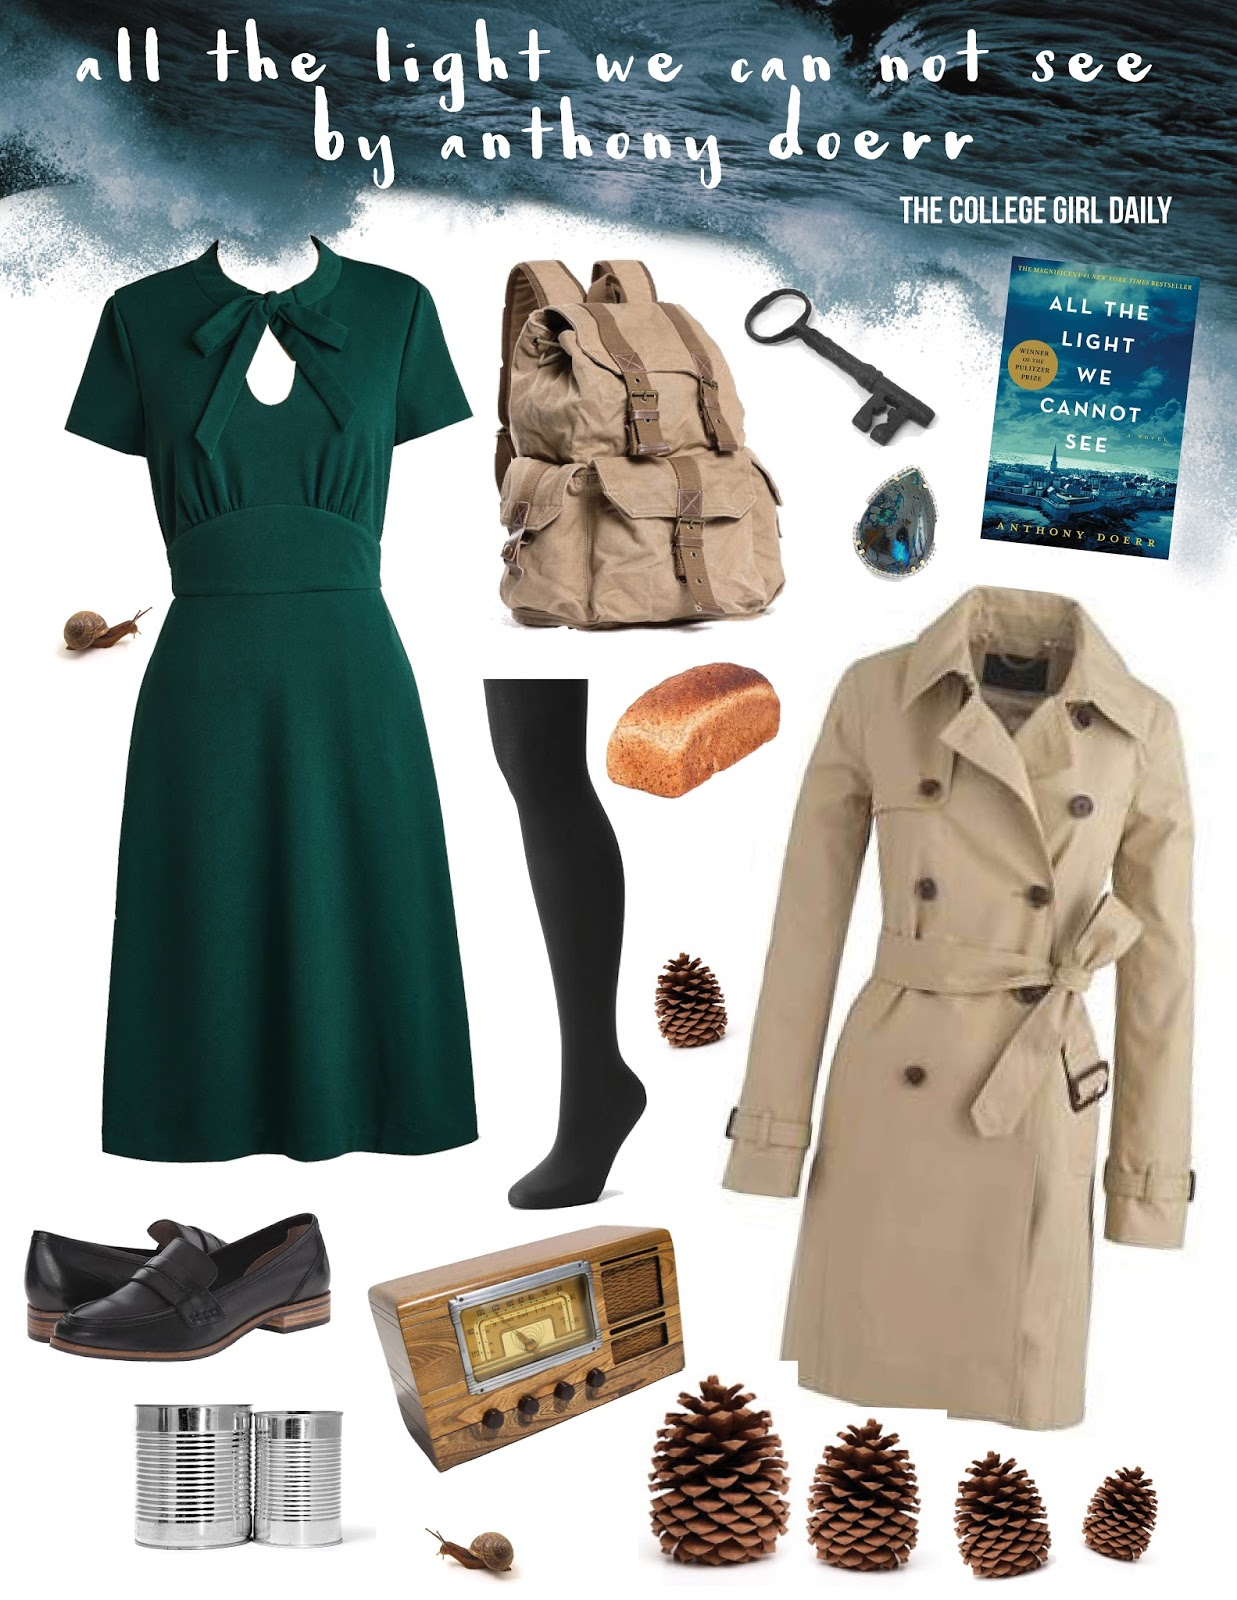 Book Inspired Outfits All the Light we Cannot see by Anthony